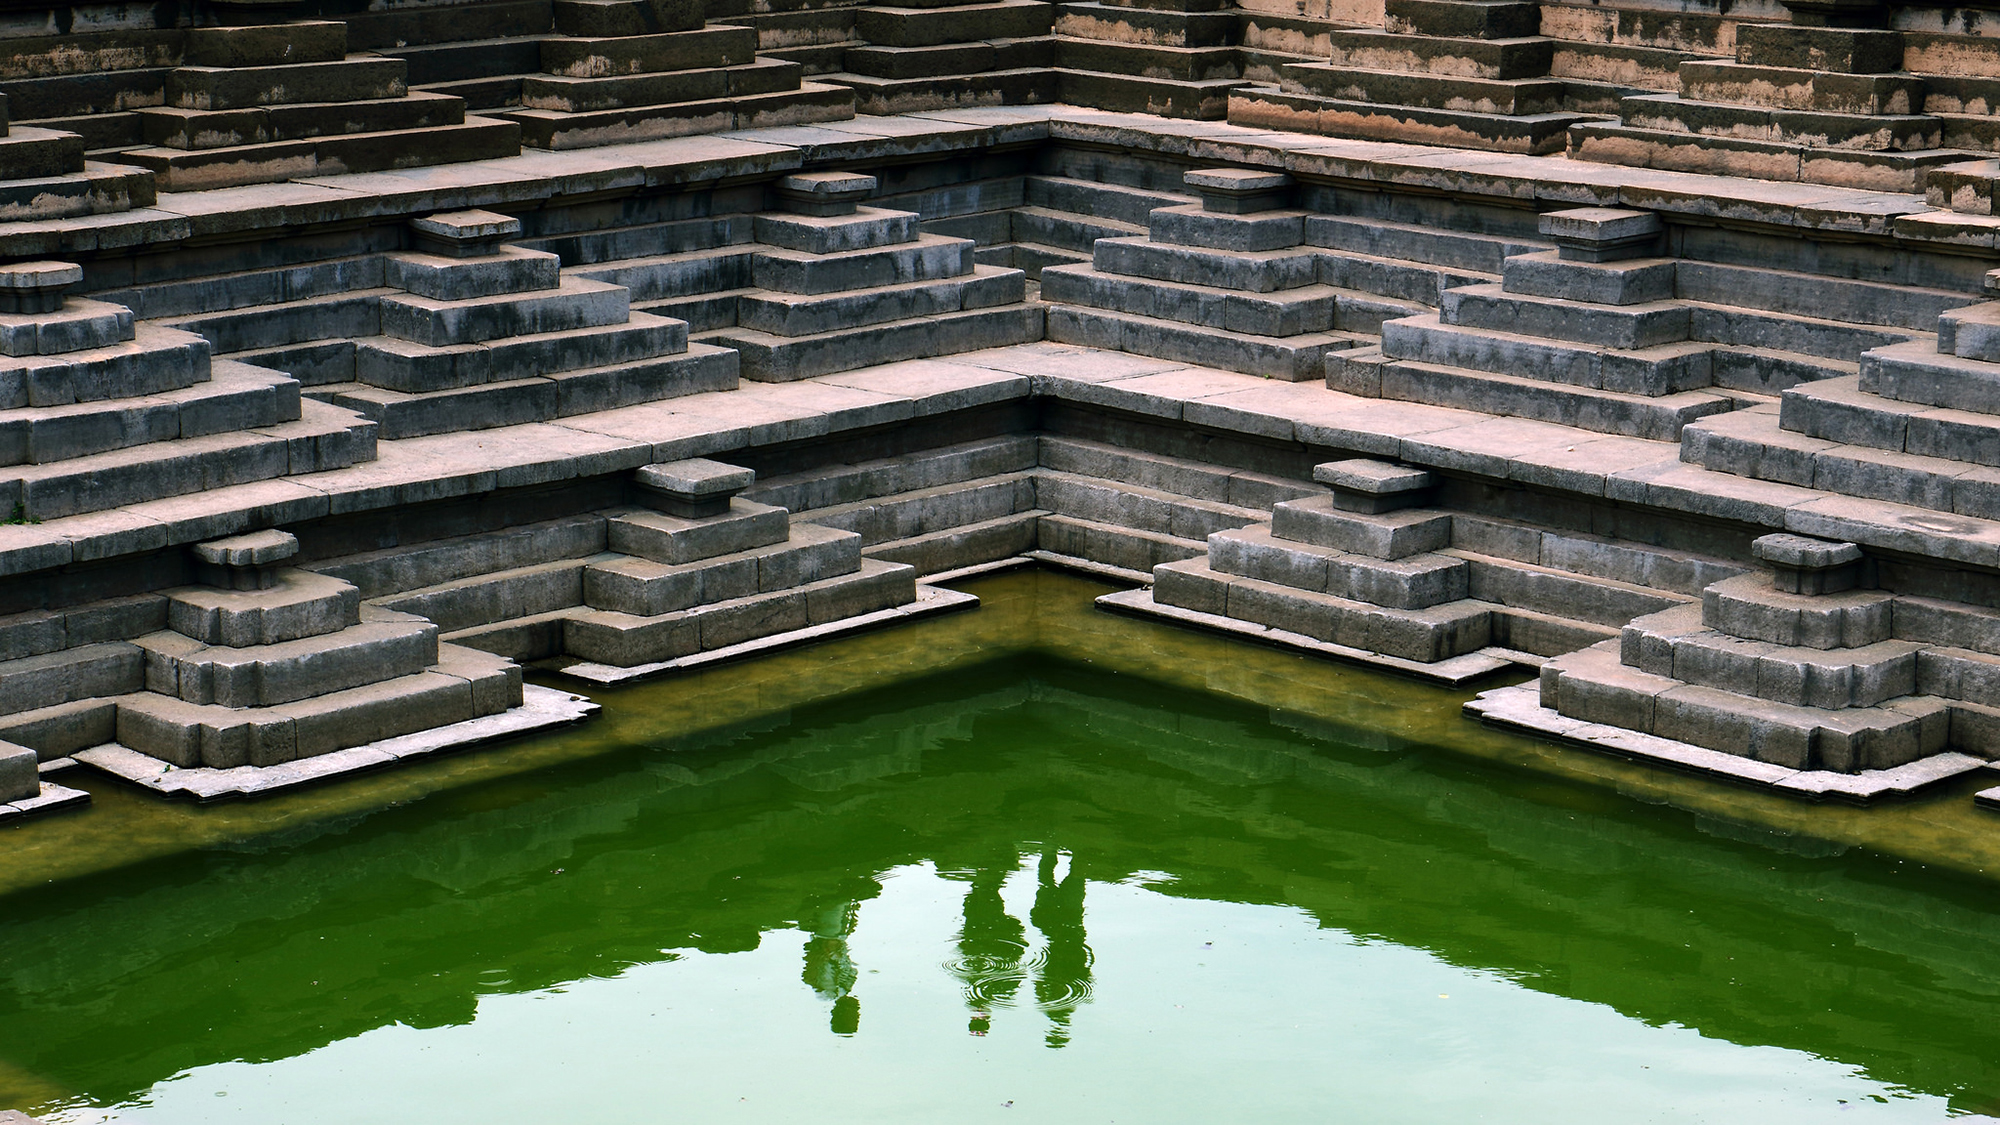 The fascinating patterns and the symmetry of the Pushkarni stepwell in Hampi where each level was carved in a repetitive triangular shape was very alluring. The three corners of the pyramid shaped stairs, the three dimensional angle where two flanks of the tank meets and the three tourists shadows on the water below presented a magical frame.